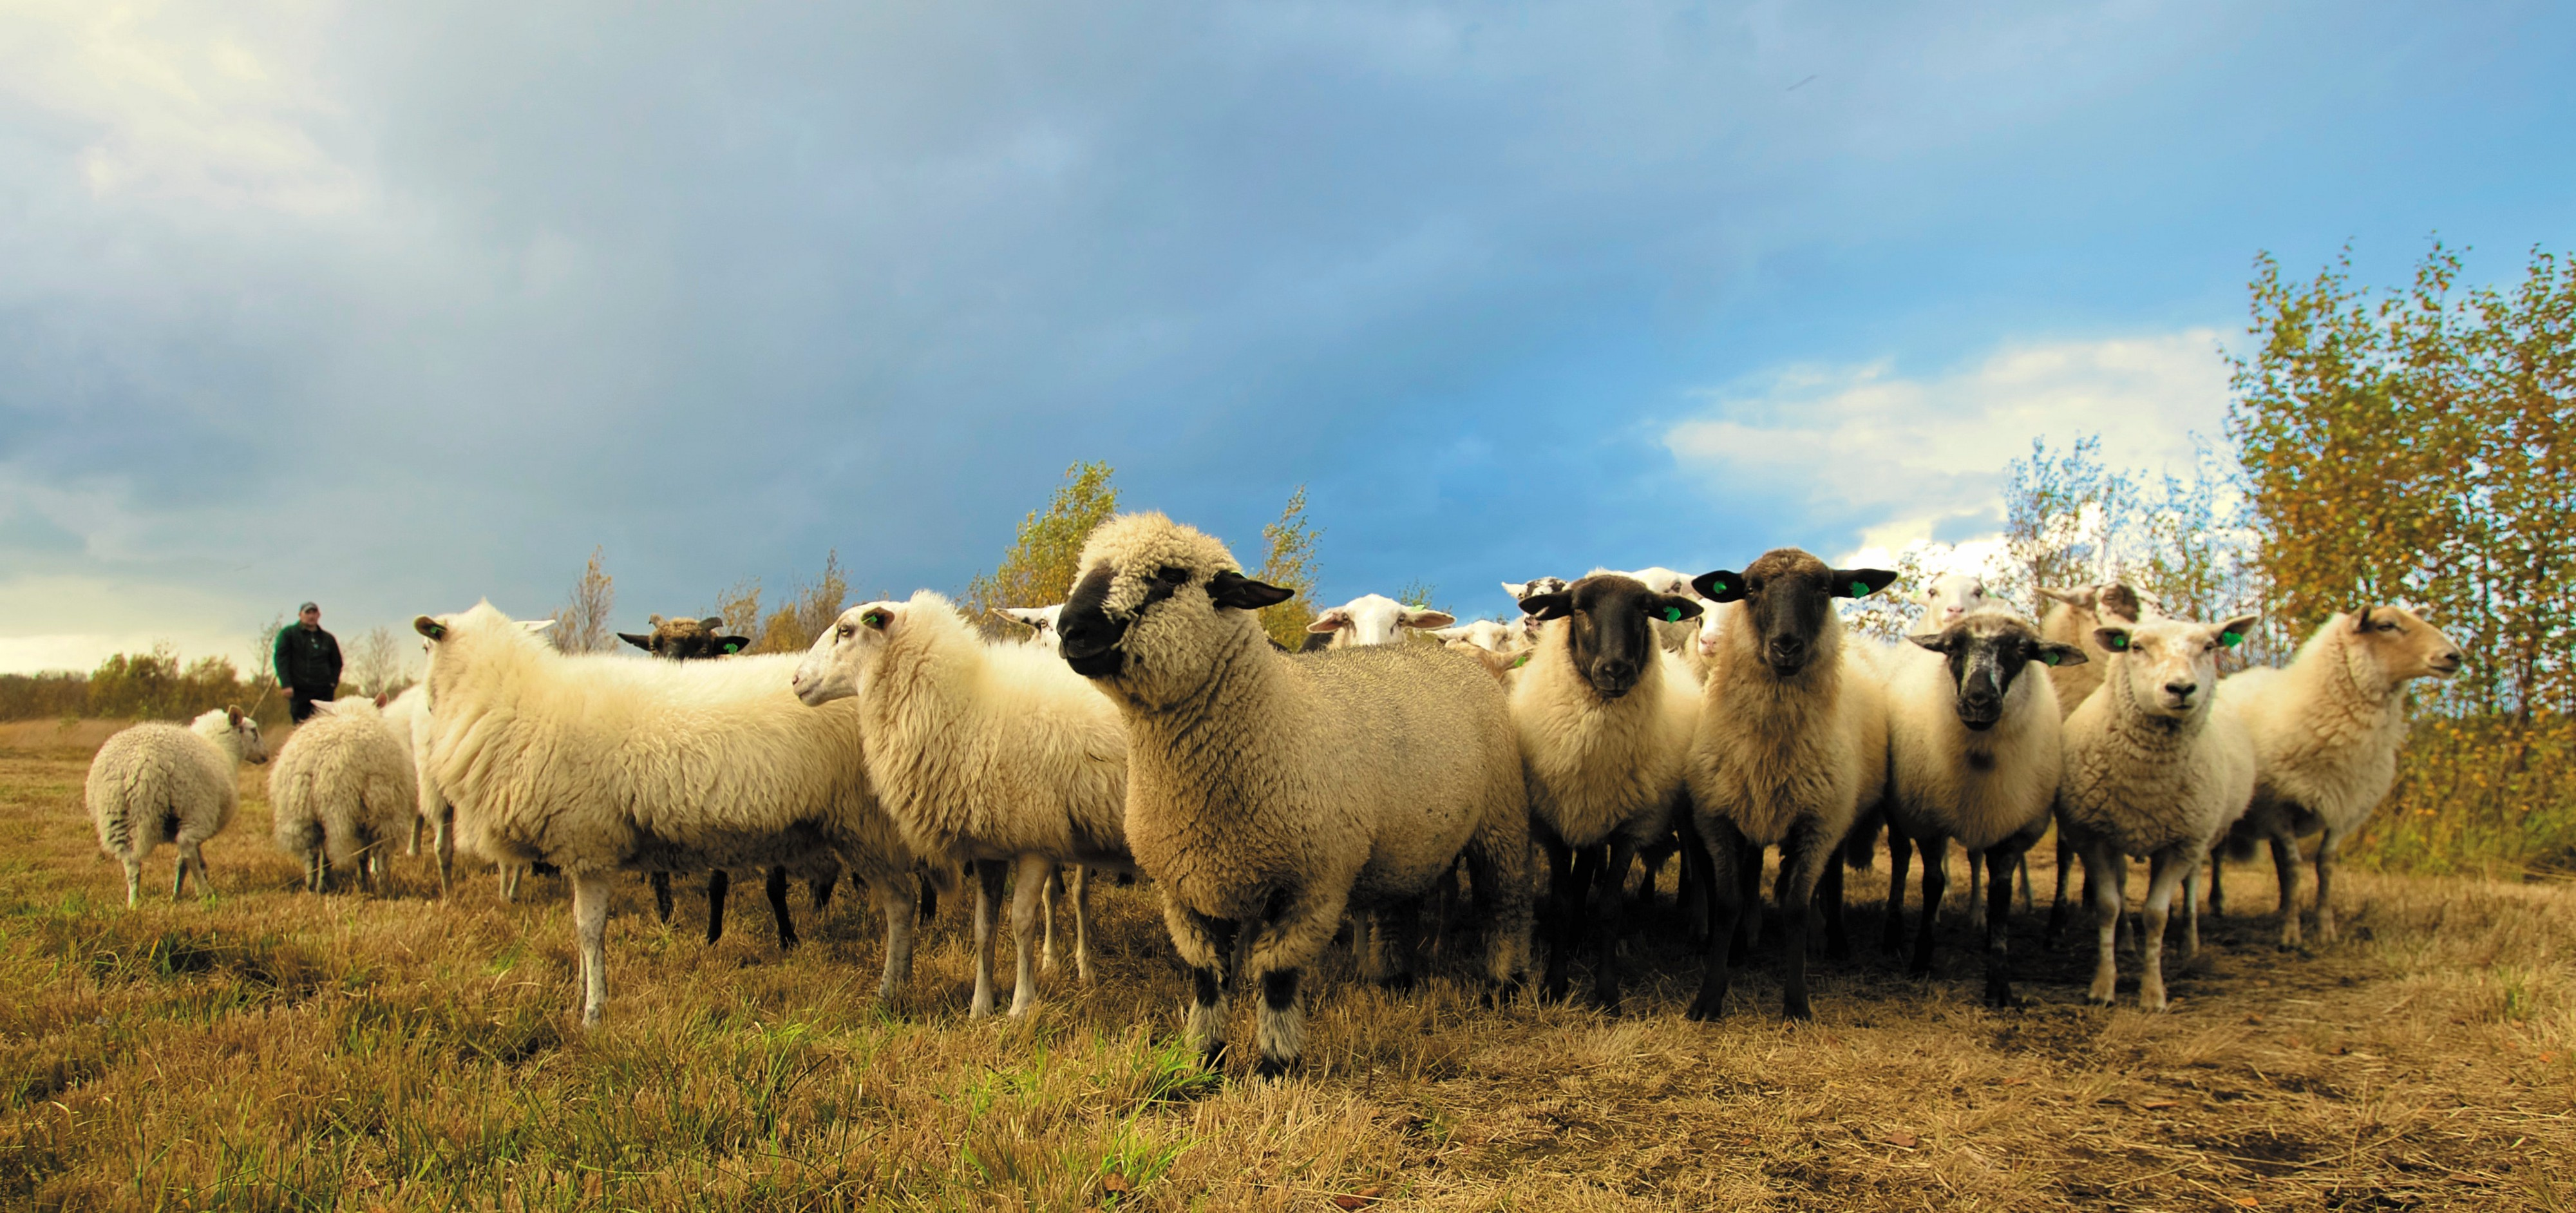 A herd of sheep in a paddock